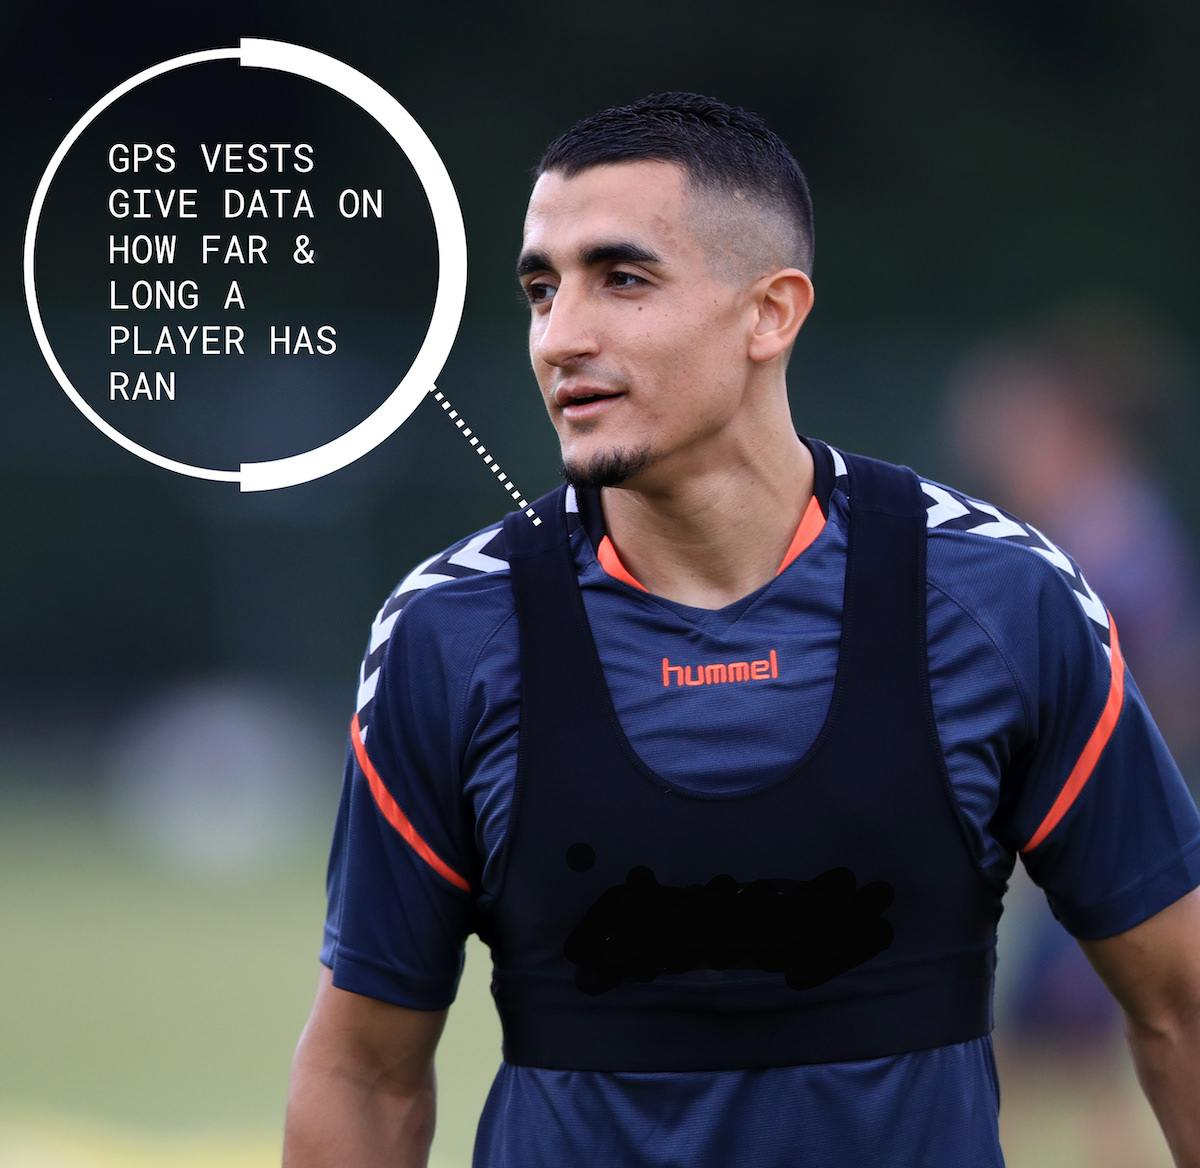 A_pro_footballer_using_a_gps_vest_in_a_training_session